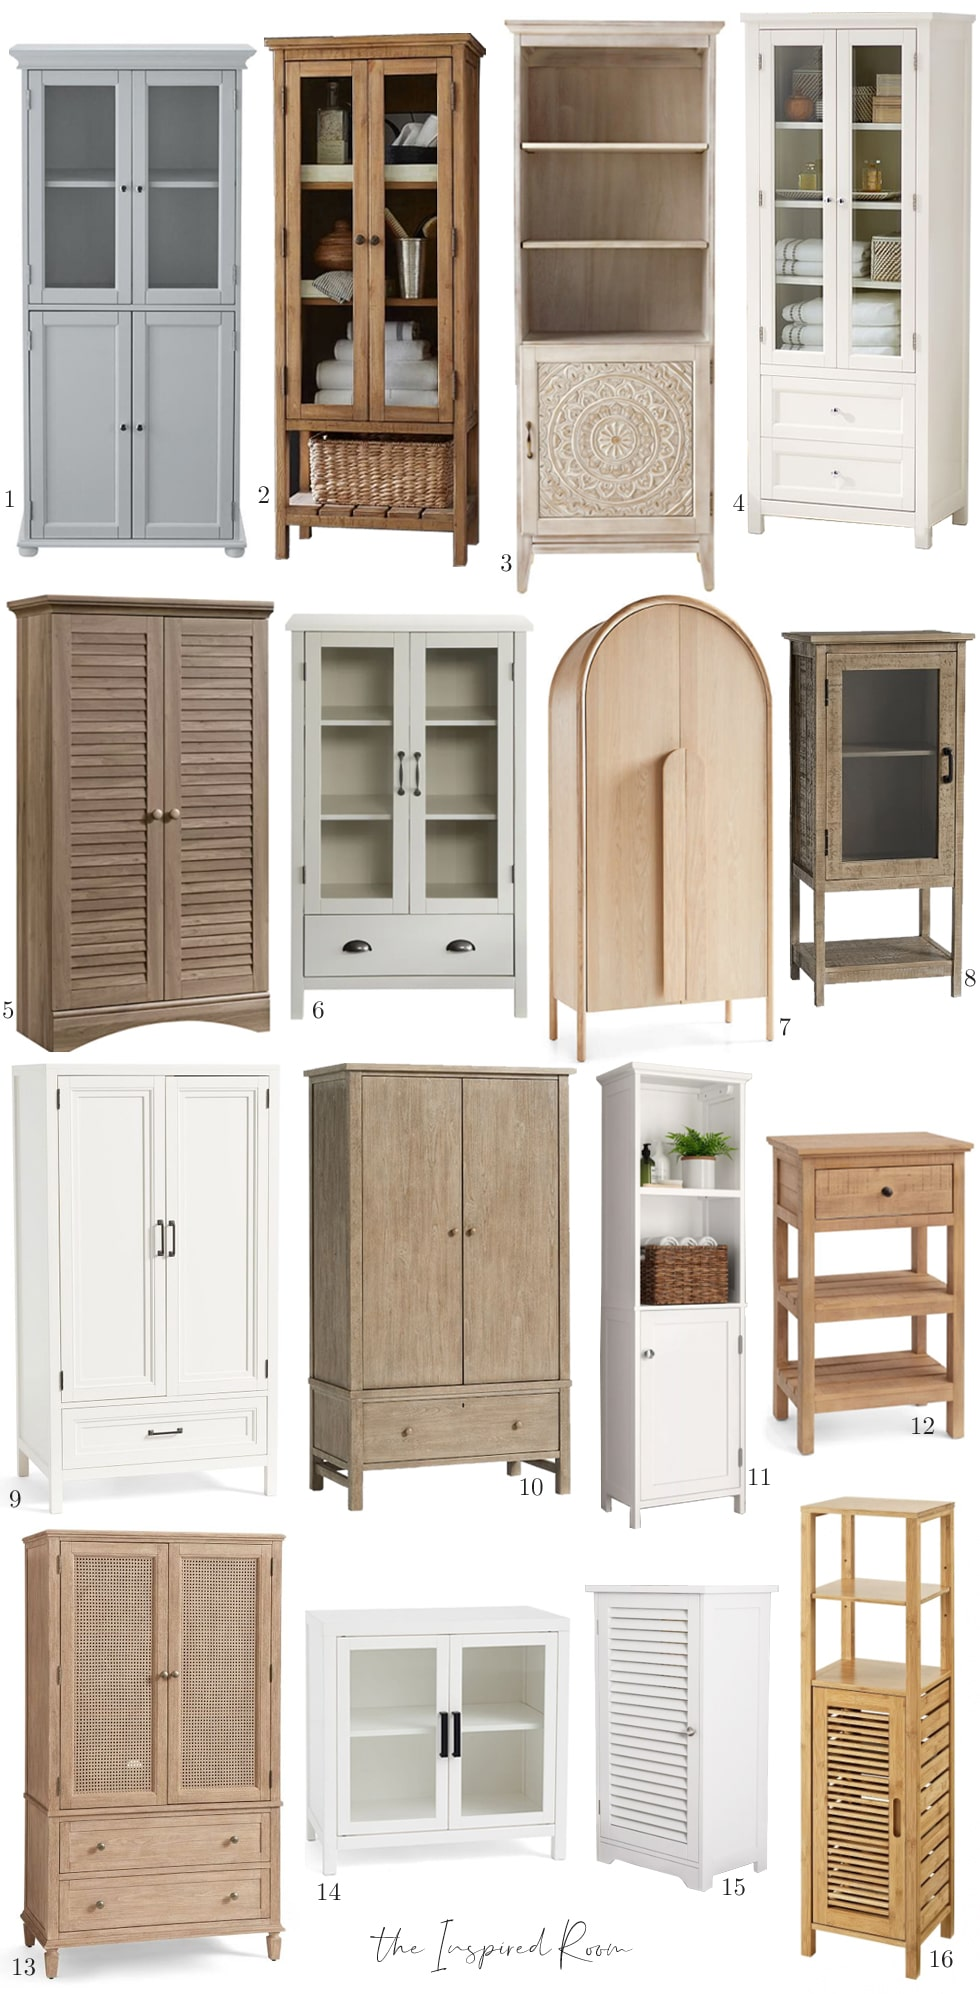 Storage cabinets for laundry and items